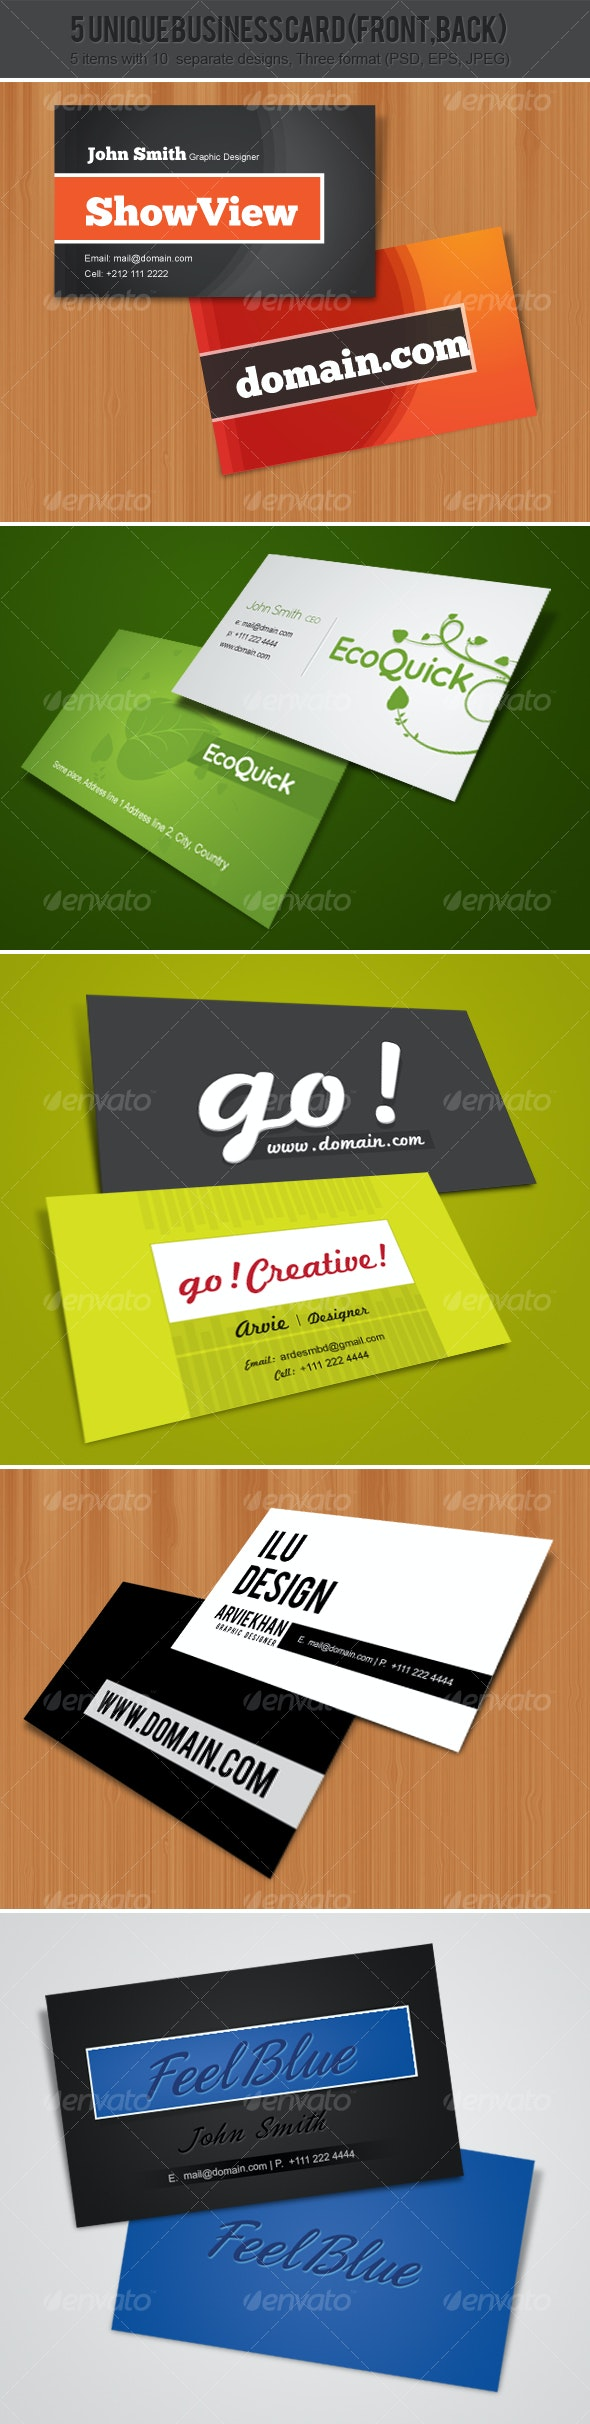 5 Unique Business Cards - Creative Business Cards